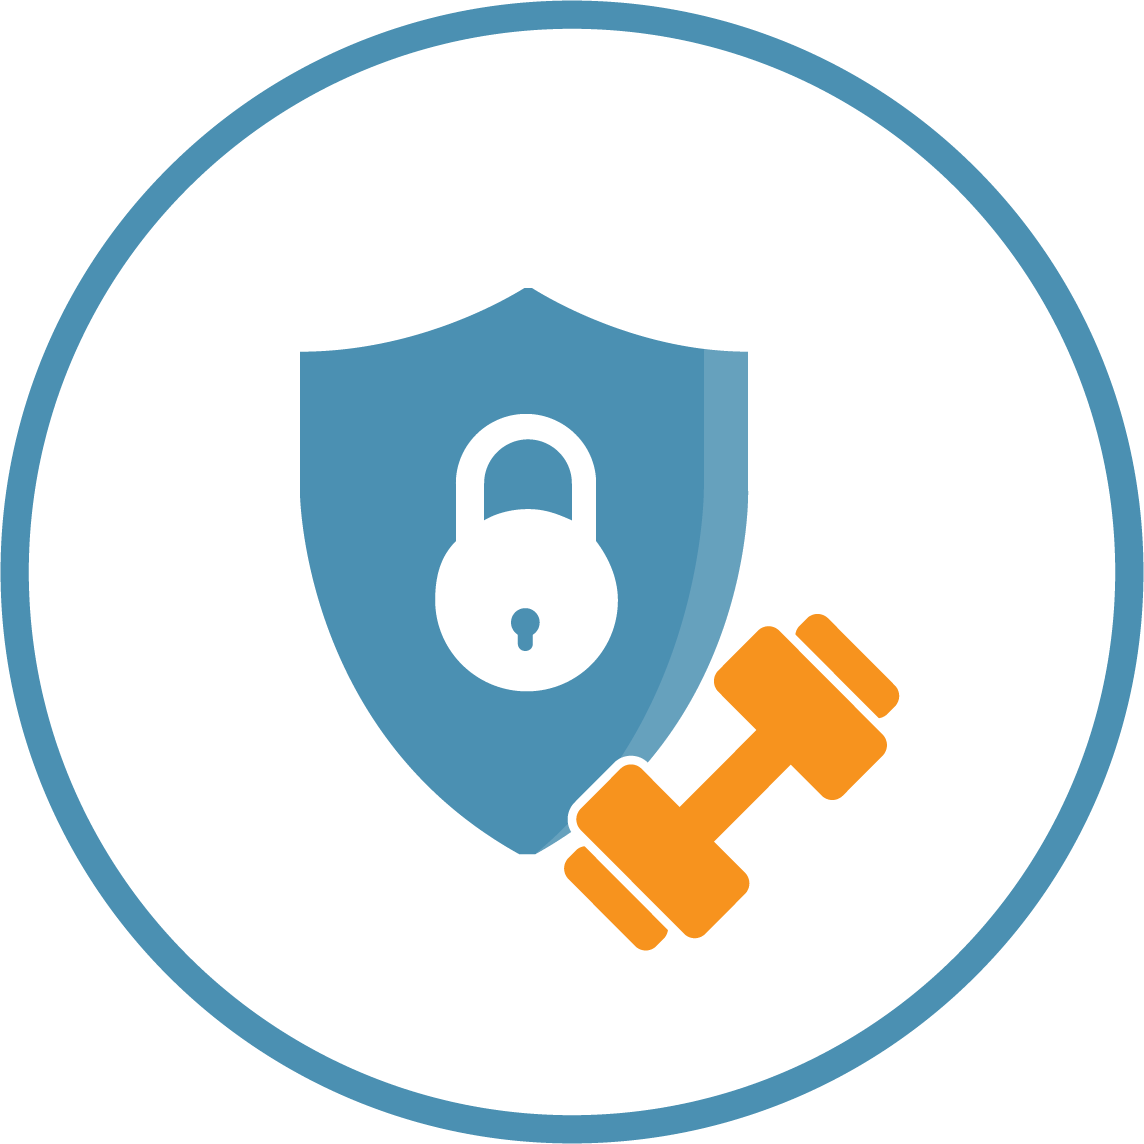 Strengthen Security icon